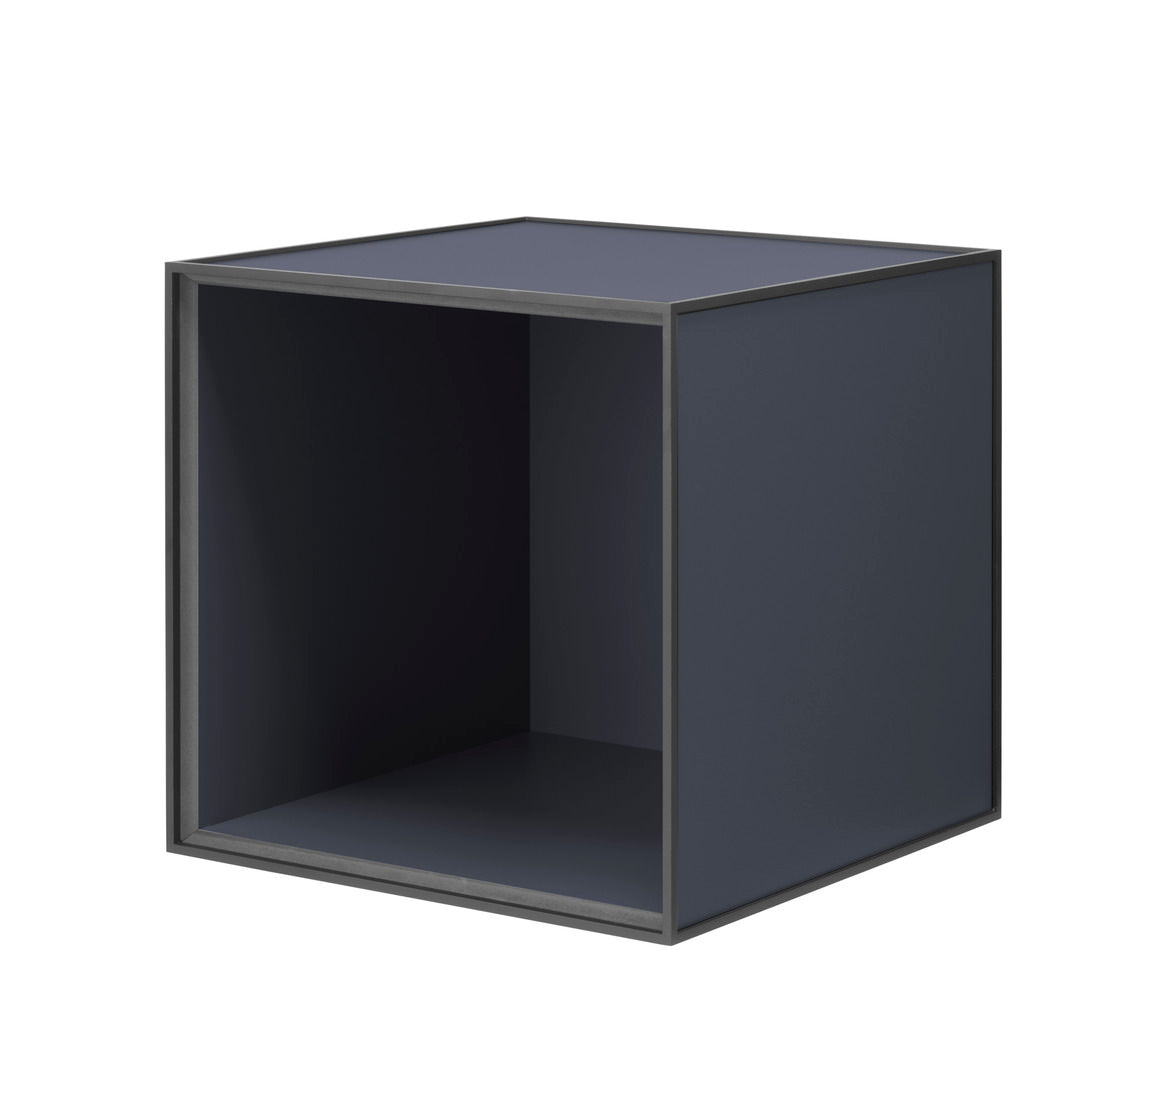 Frame 35 INCL door, 35x35x35, dark blue fra By Lassen